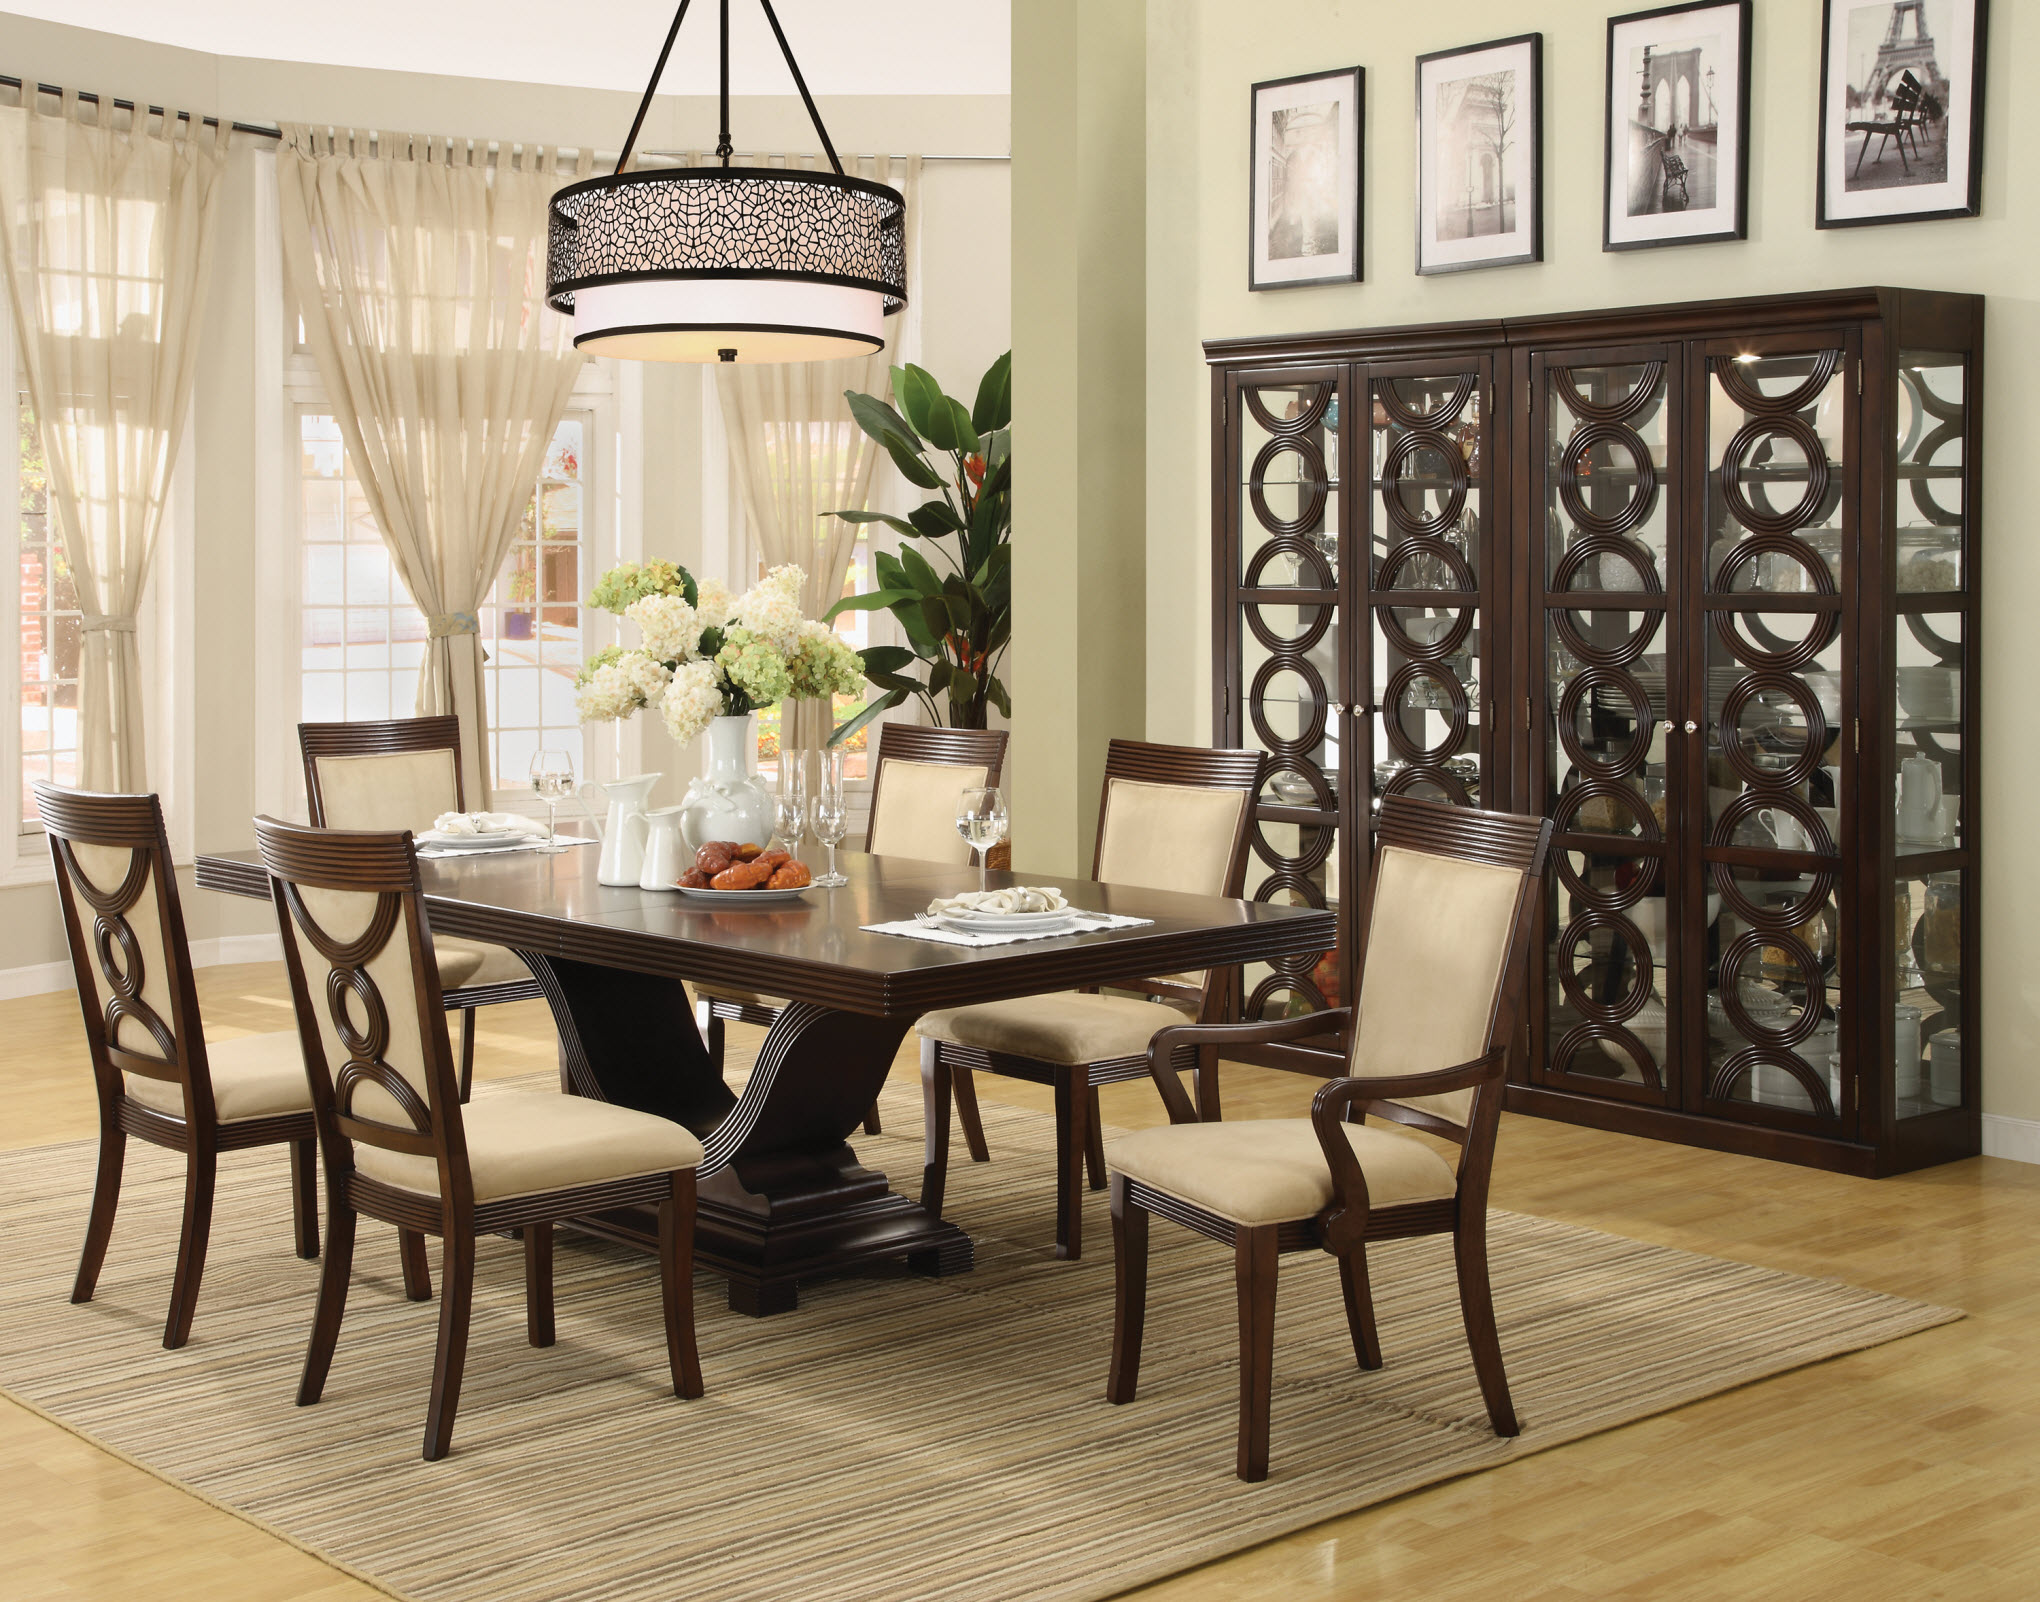 dining room sets bench seating 繧篏 dining room decor ideas and